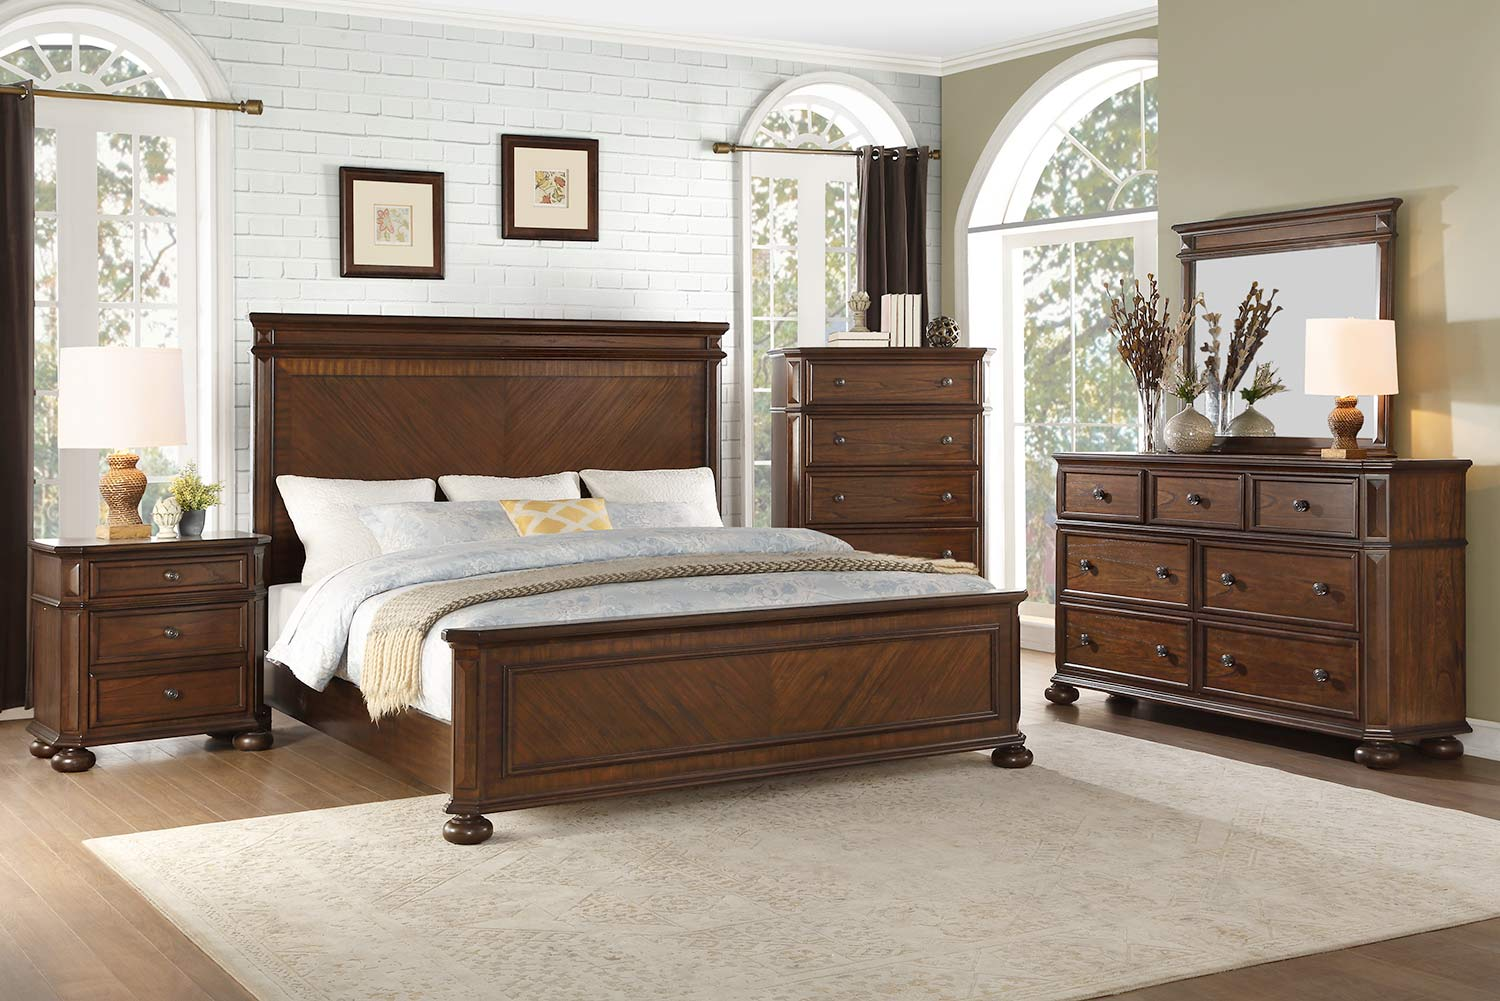 Homelegance Langsat Panel Bedroom Set - Brown